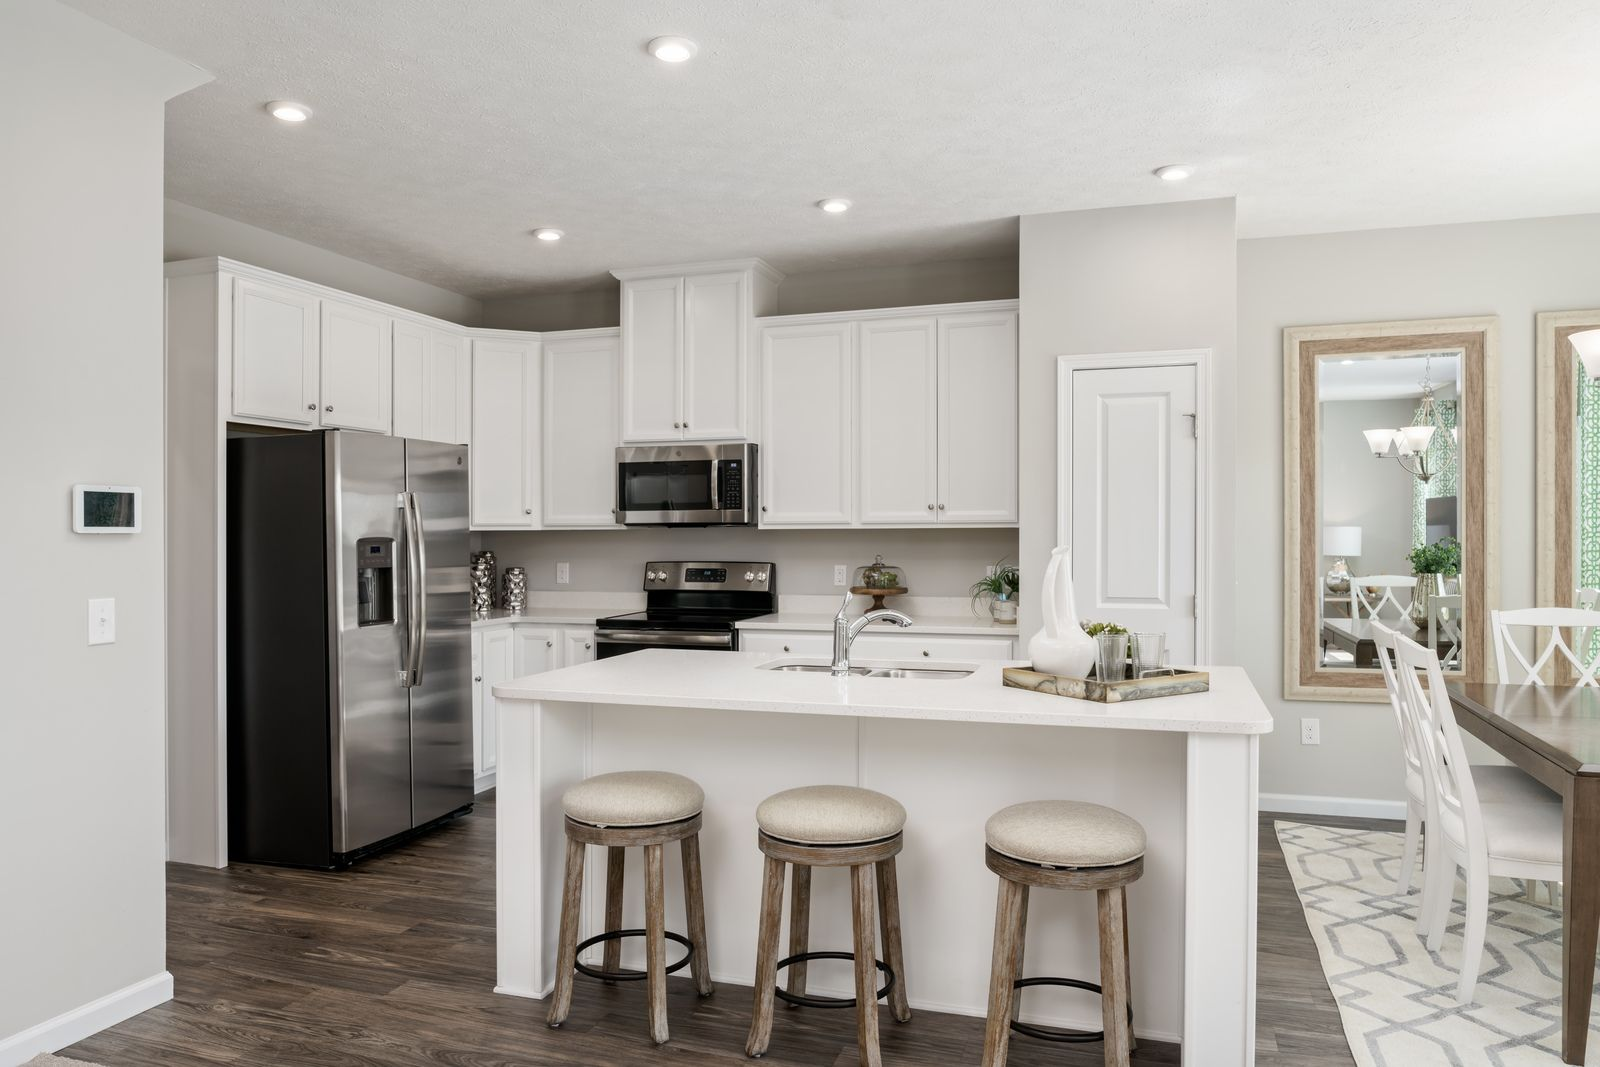 NEW 2-story TOWNHOMES In Montgomery - Now Holding VIP Appointments:For a great value, enjoy 3-bedroom slab townhomes w/ community park, walking trails & more! Only minutes to Rt. 47 and I-88. Mid $200s. Now holding VIP appointments.Click here to become a VIP!